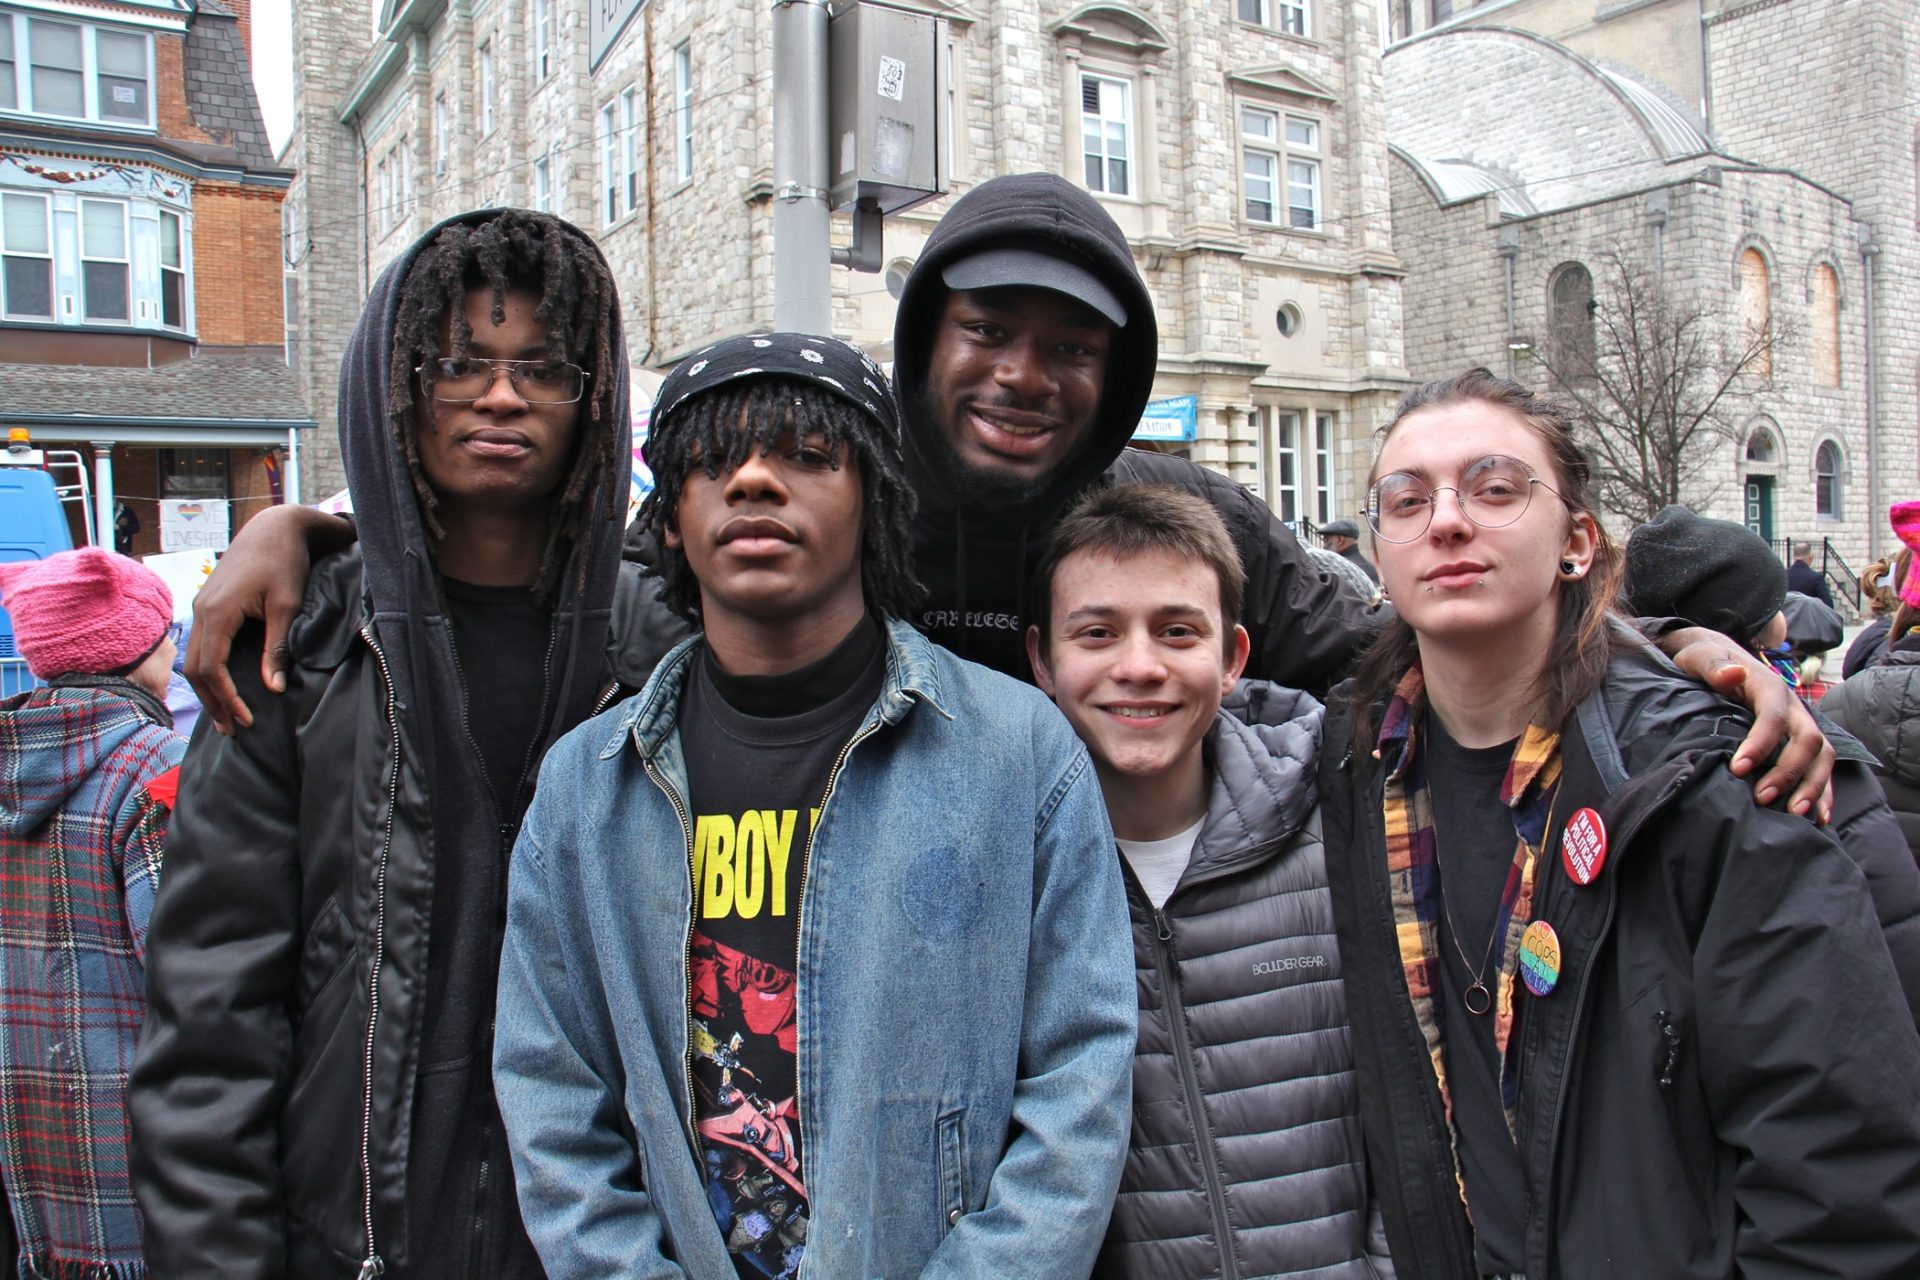 Studemts from the Philly Free School, an alternative school in West Philadelphia, attend a protest against Vice President Mike Pence, who was speaking at St. Francis de Sales School. They are (from left) Prey Lambert, Miles Conyers, Sabri Stamps, Ivo Linkin and Tobias-Maxwell Steich-Otto.